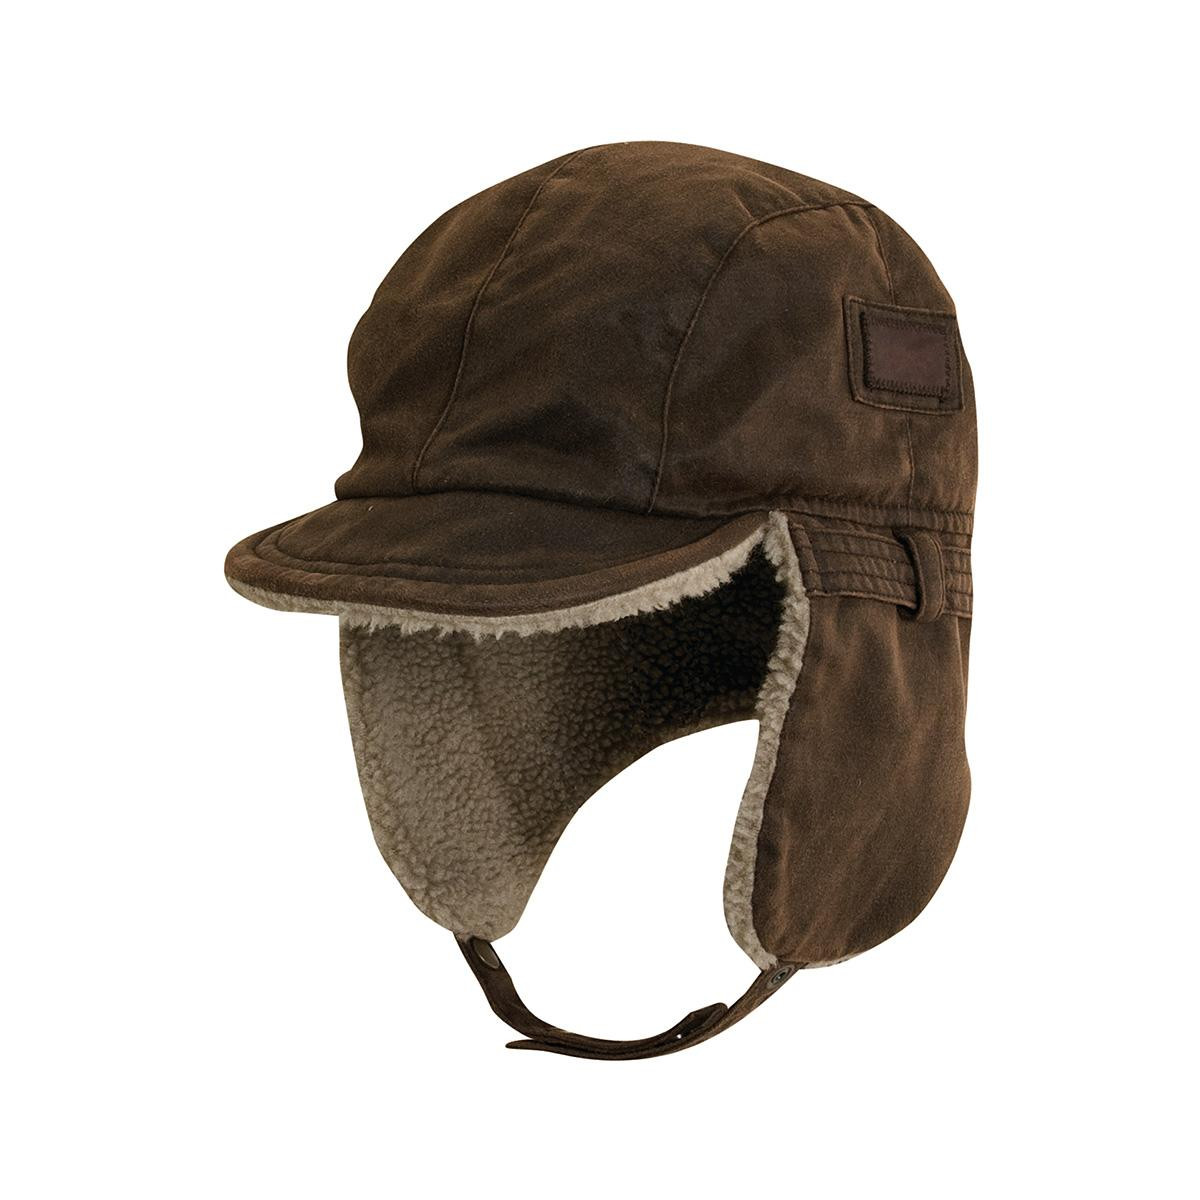 Hat with Ear Flaps Awesome Dorfman Pacific Of Top 42 Photos Hat with Ear Flaps